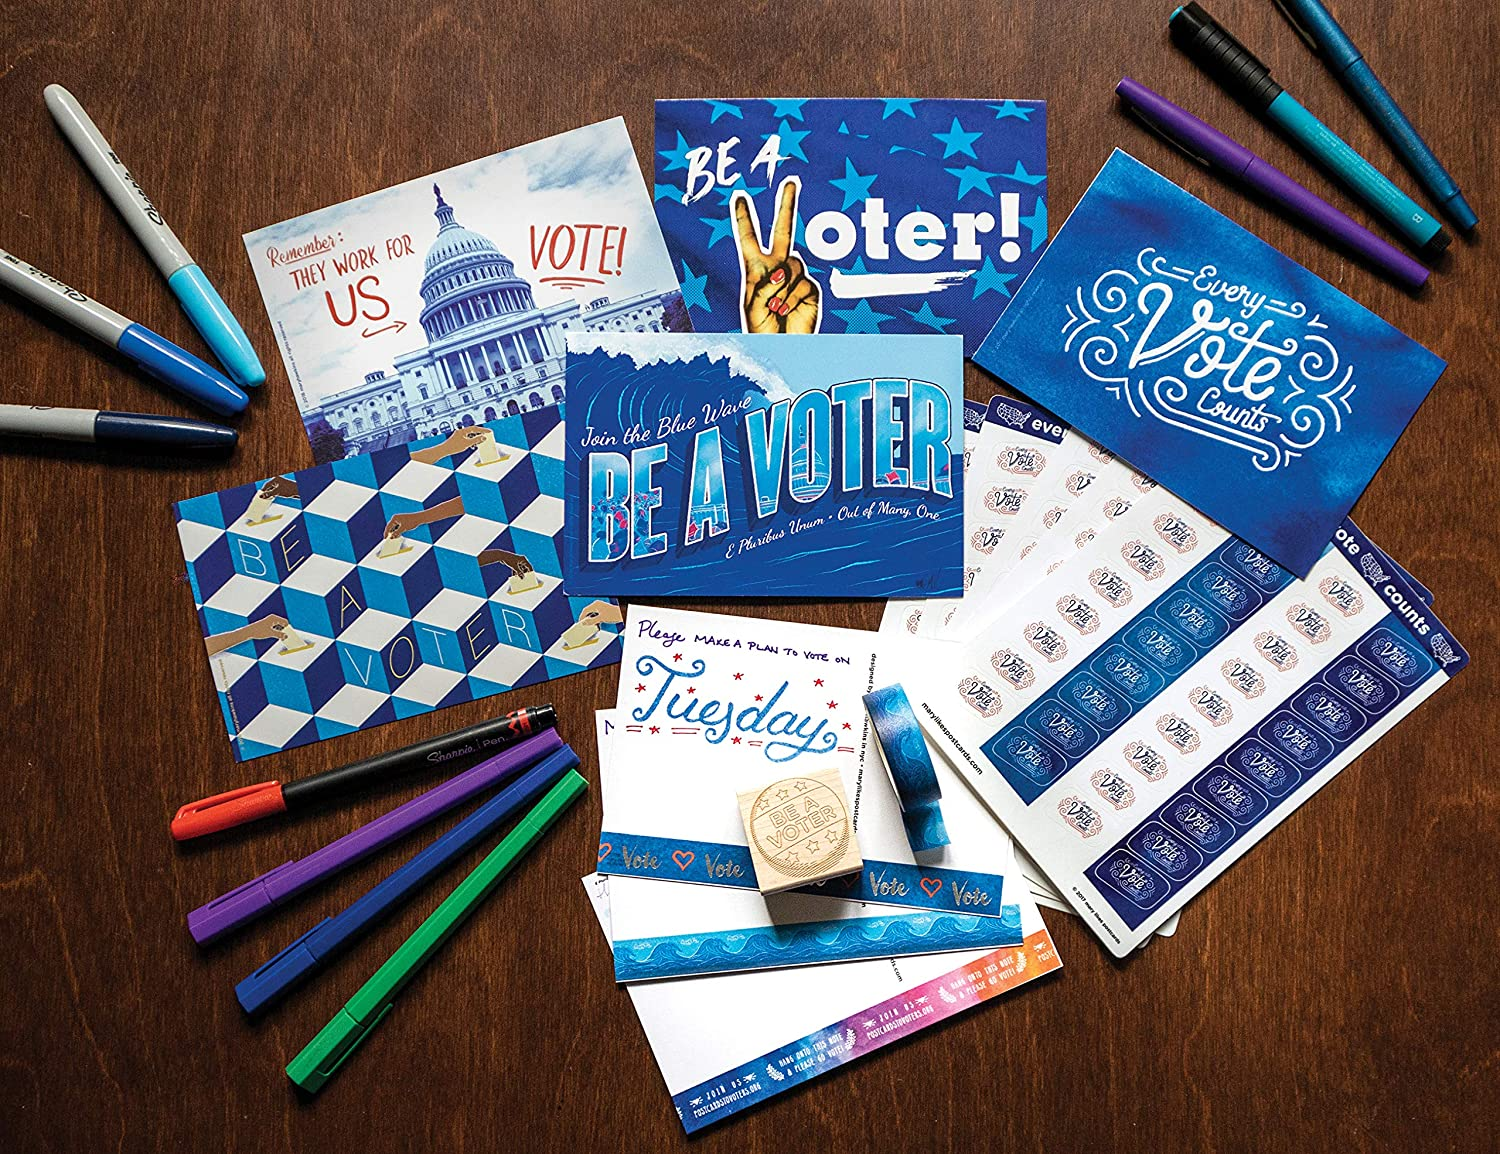 perfect for writing to your reps or get out the vote Political Postcards Set of 50 blueEvery Vote Counts postcards